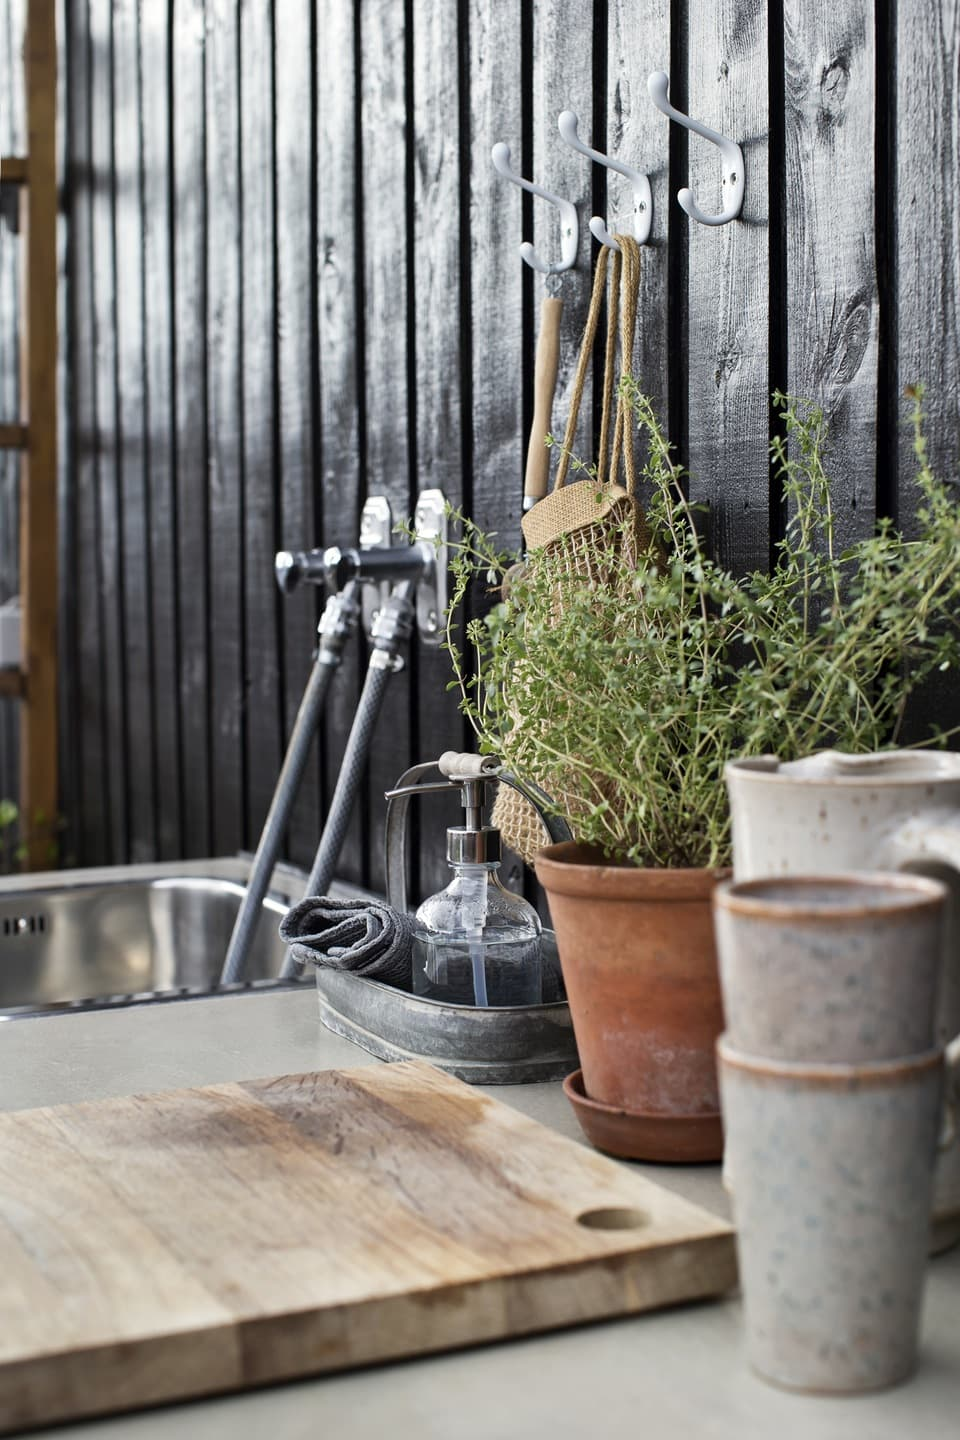 this is a workbench in a garden